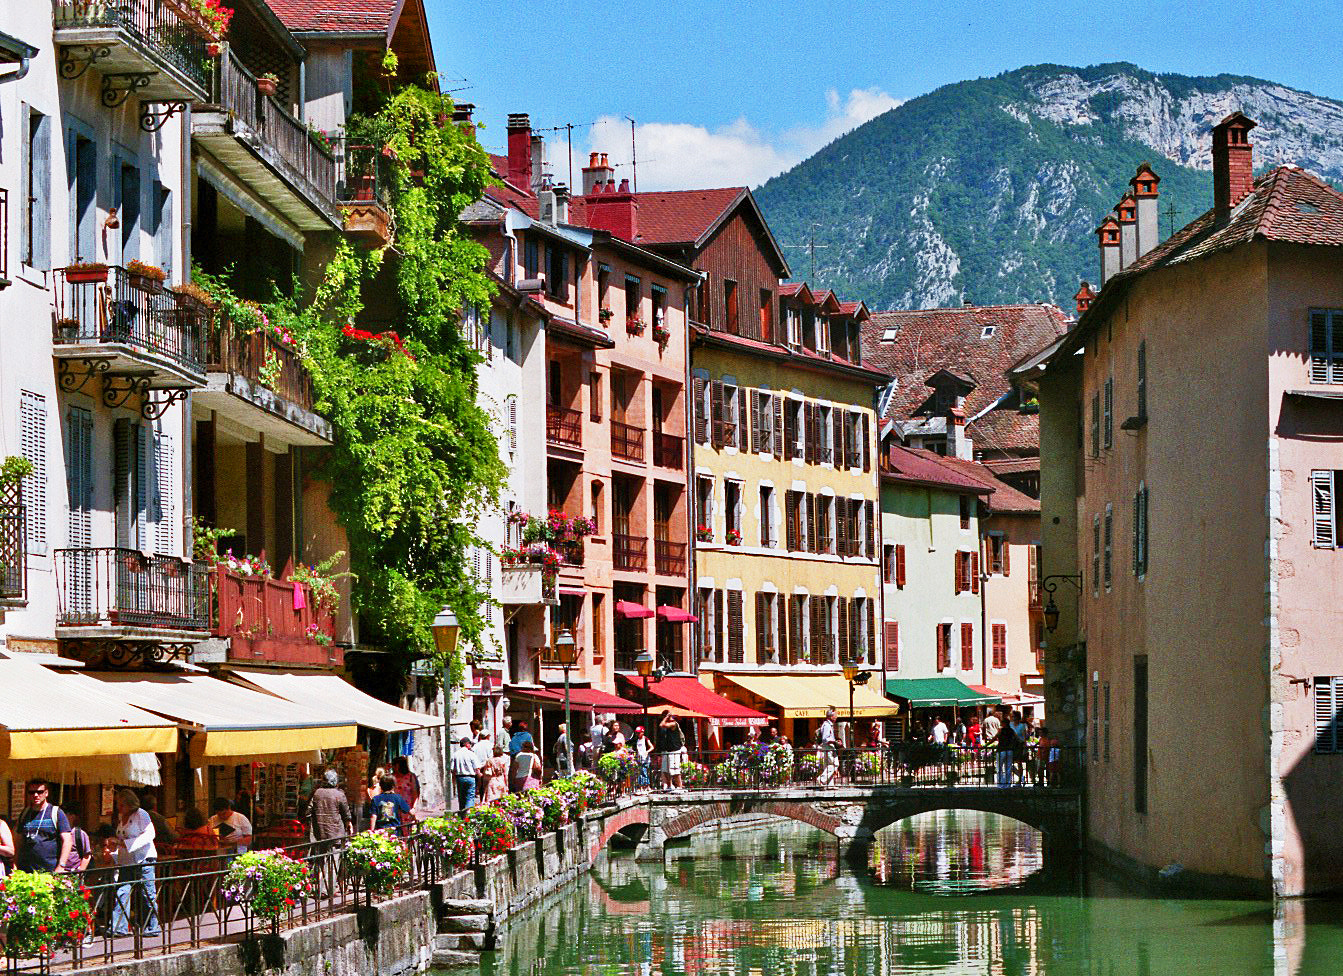 Photograph Annecy 2 by Sandra Laroche on 500px